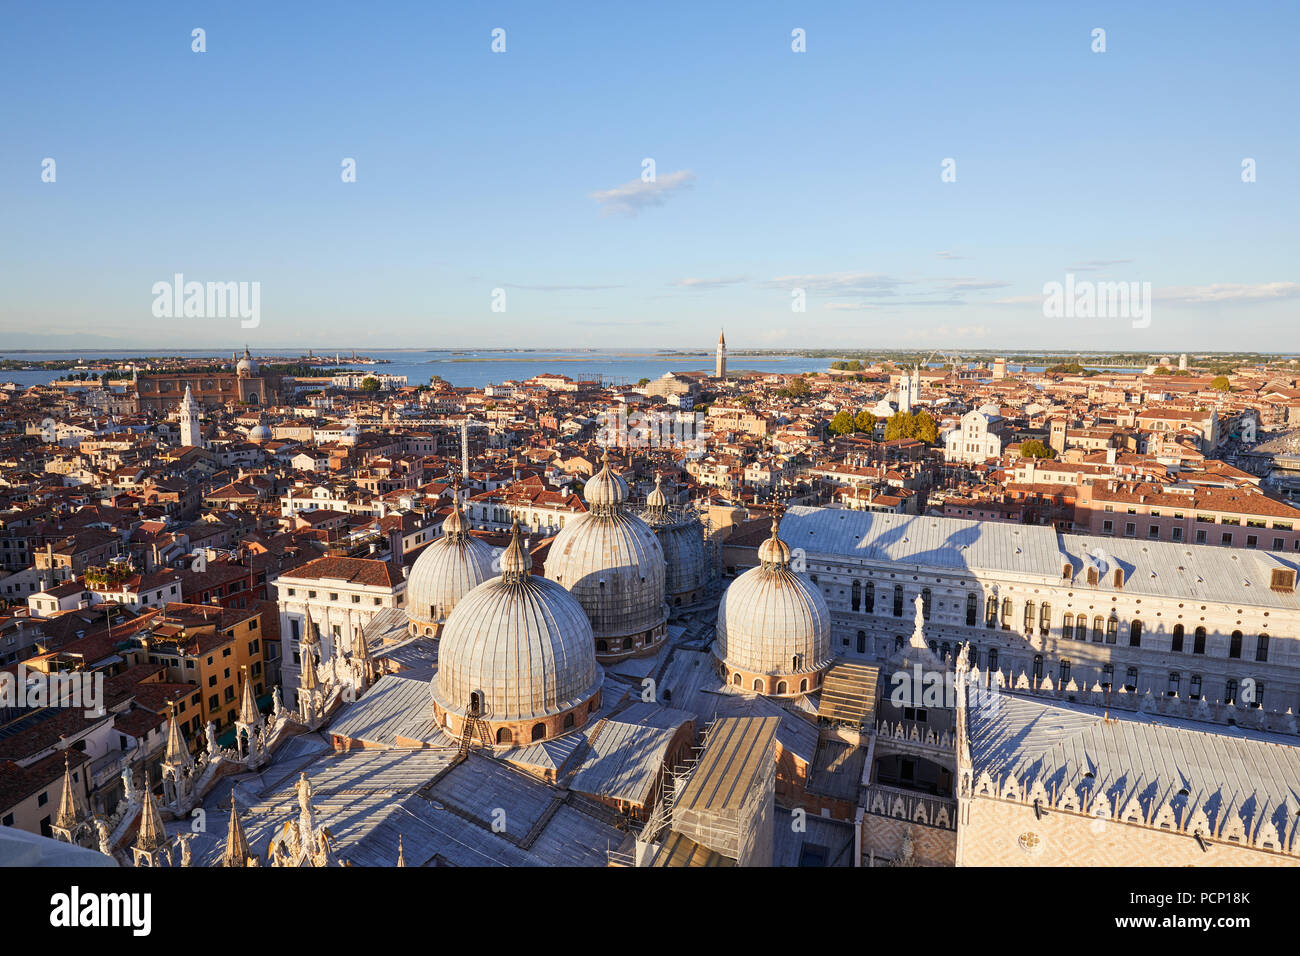 Aerial view of Venice rooftops, Saint Mark Basilica domes and horizon before sunset, Italy - Stock Image